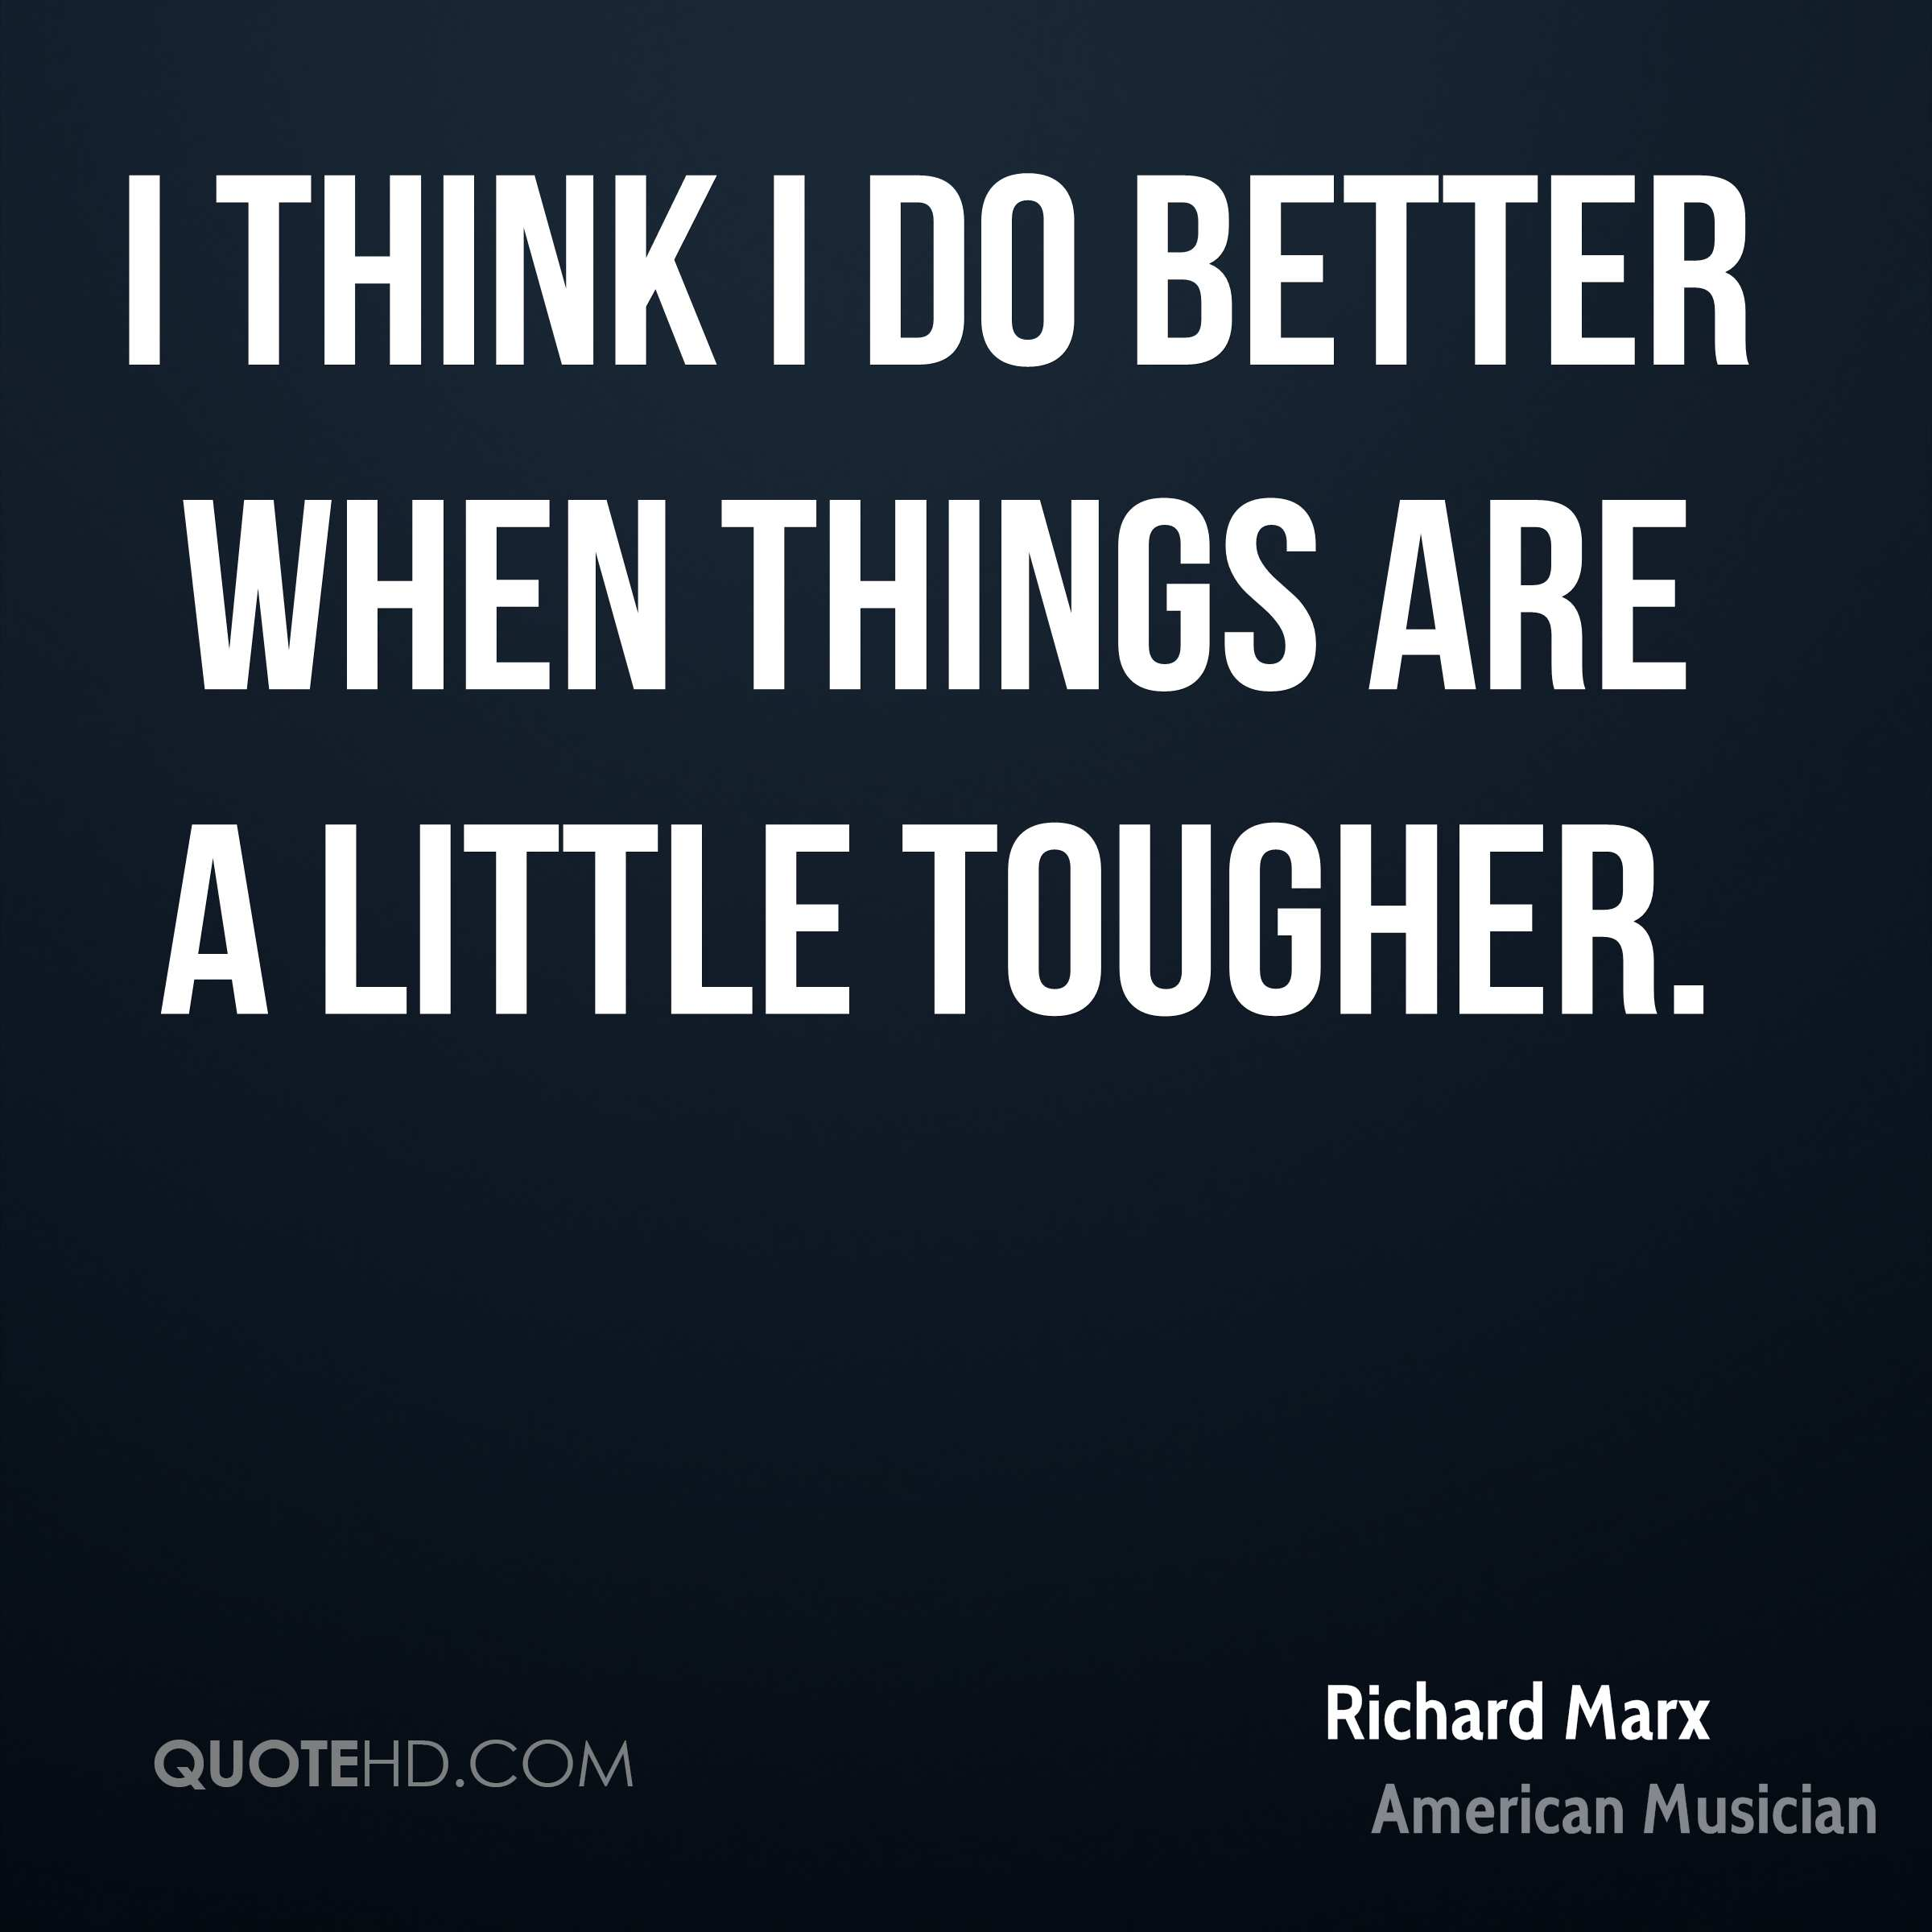 I think I do better when things are a little tougher.